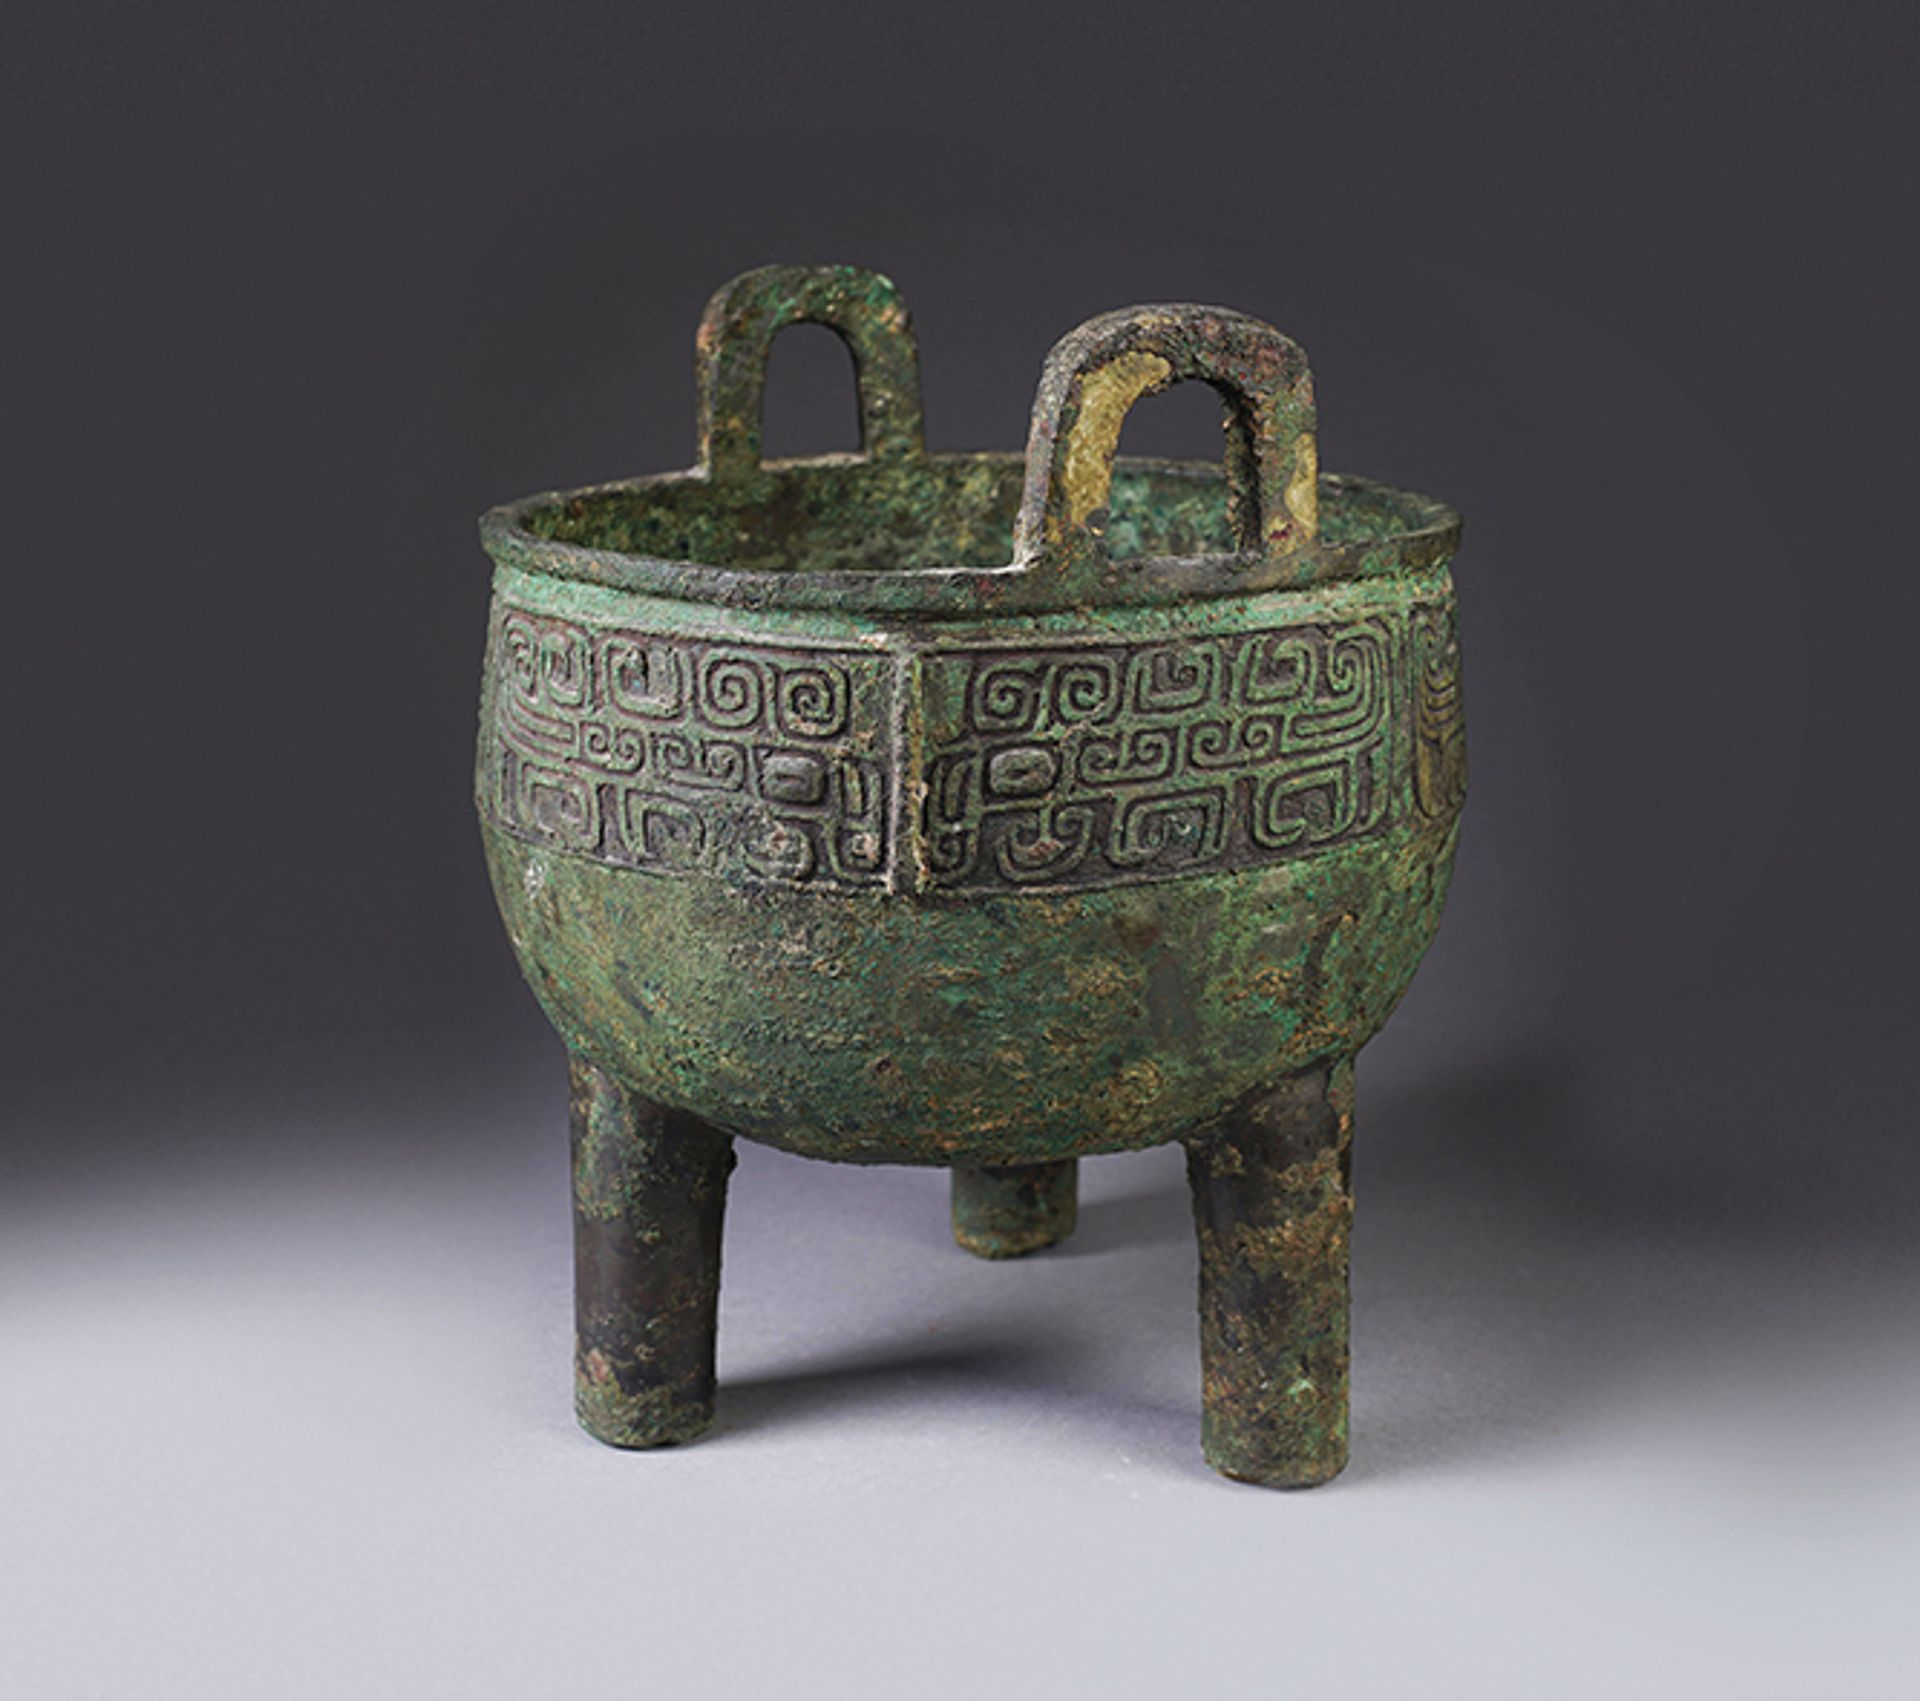 A Chinese archaic bronze ding, or food vessel, from the Western Zhou Dynasty, to be offered in iGavel's online auction Courtesy of iGavel Auctions